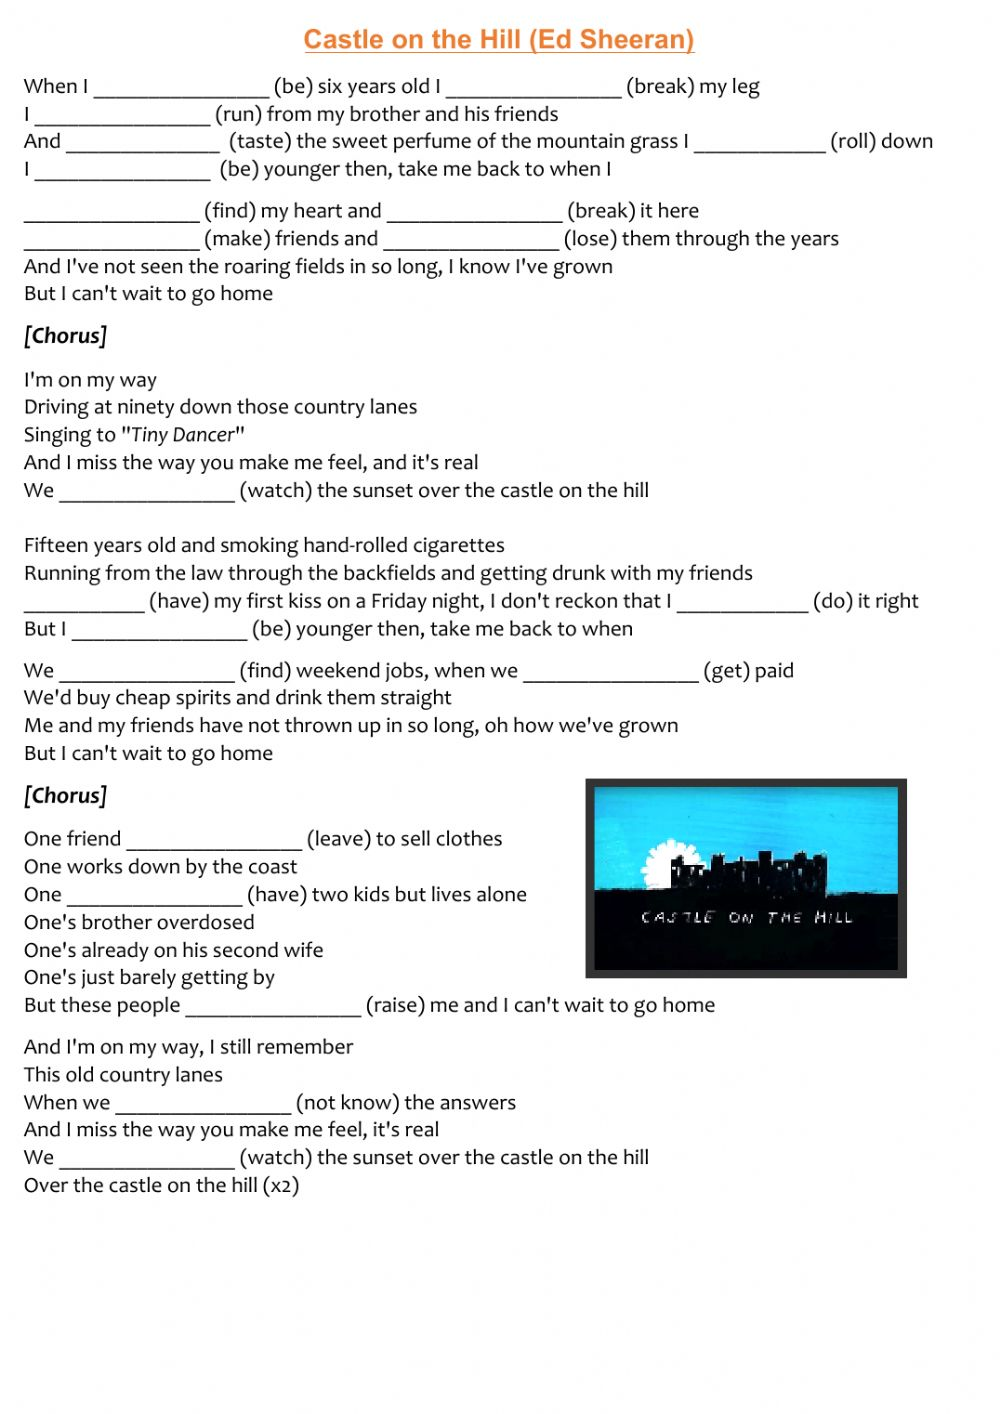 Castle On The Hill Song By Ed Sheeran Worksheet